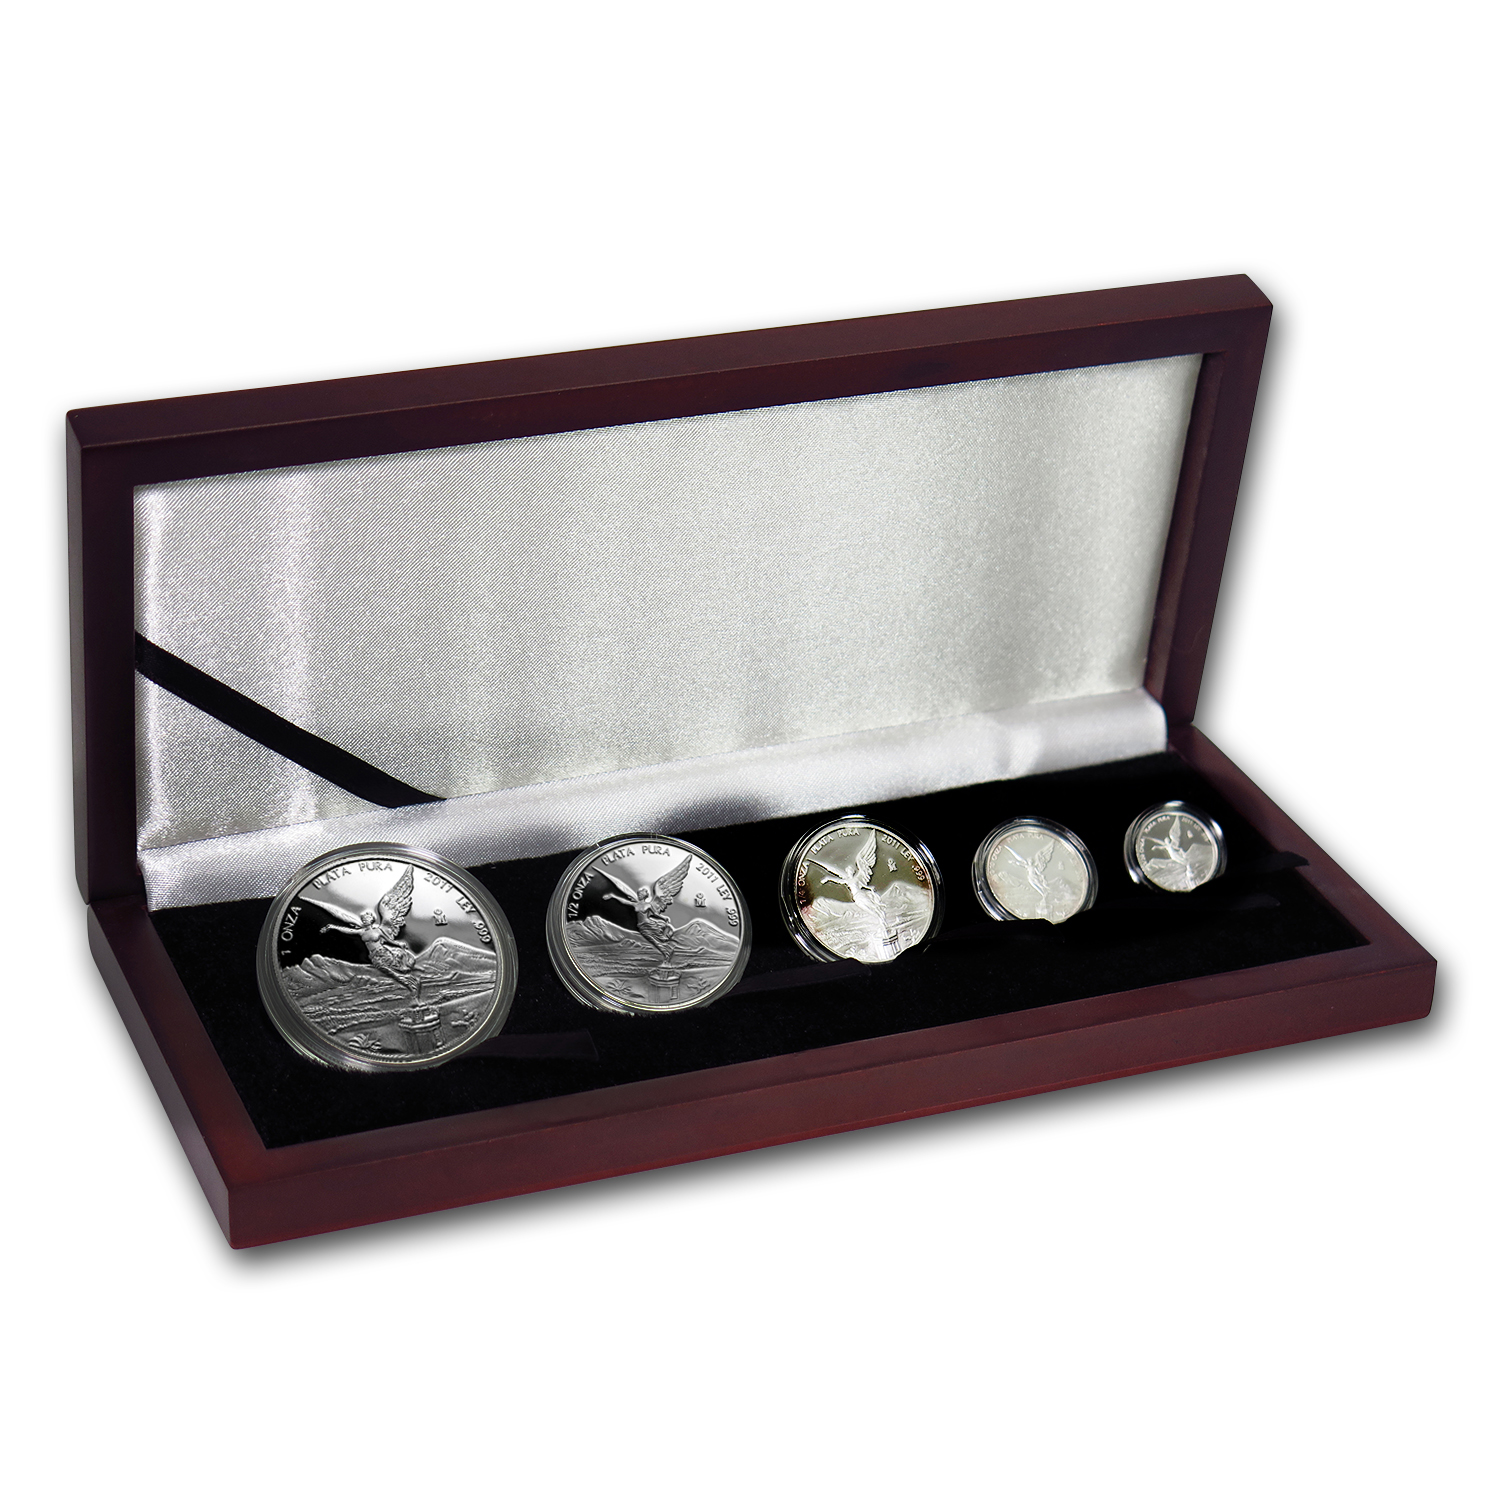 2011 (5 Coin - 1.9 oz) Silver Libertad Proof Set (In Wood Box)